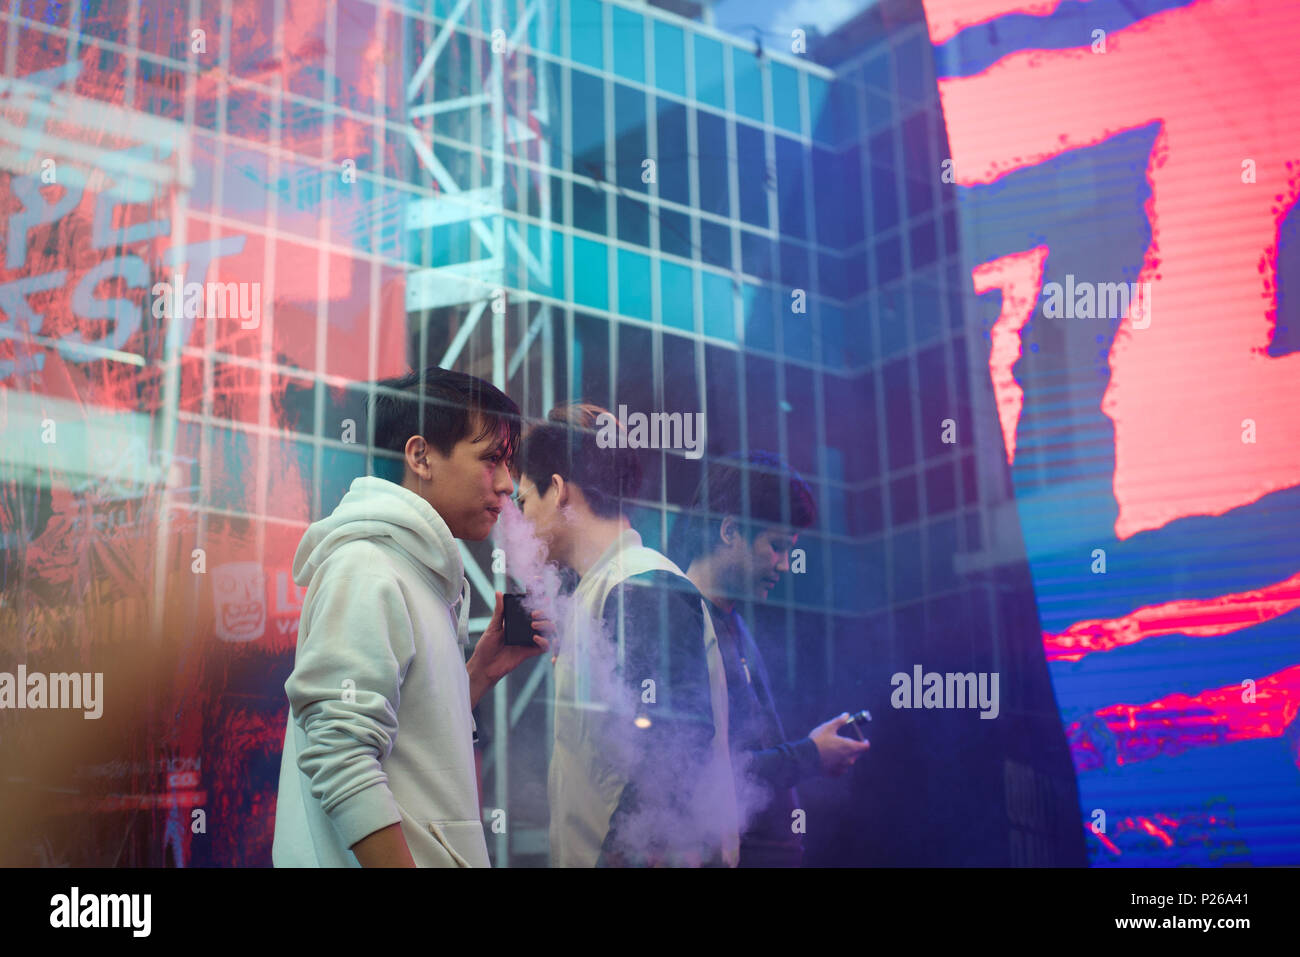 Vape-cloud trickers are warming-up before vape-cloud trick contest during Jakarta Vape Fest 2018 in South Jakarta, 6 May 2018. © Reynold Sumayku - Stock Image